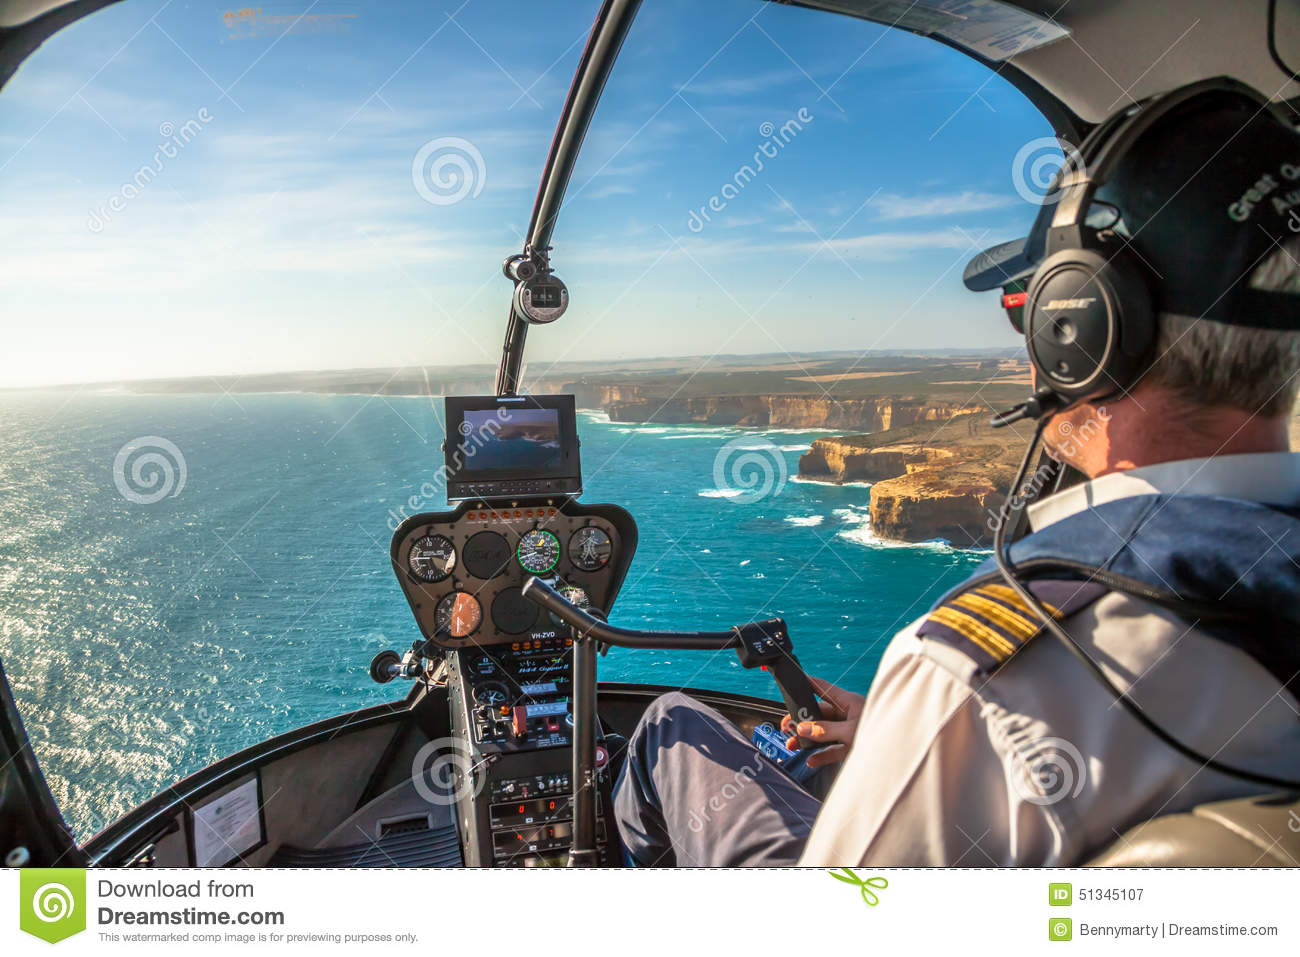 Twelve Apostles Helicopter Editorial Photography  Image 51345107